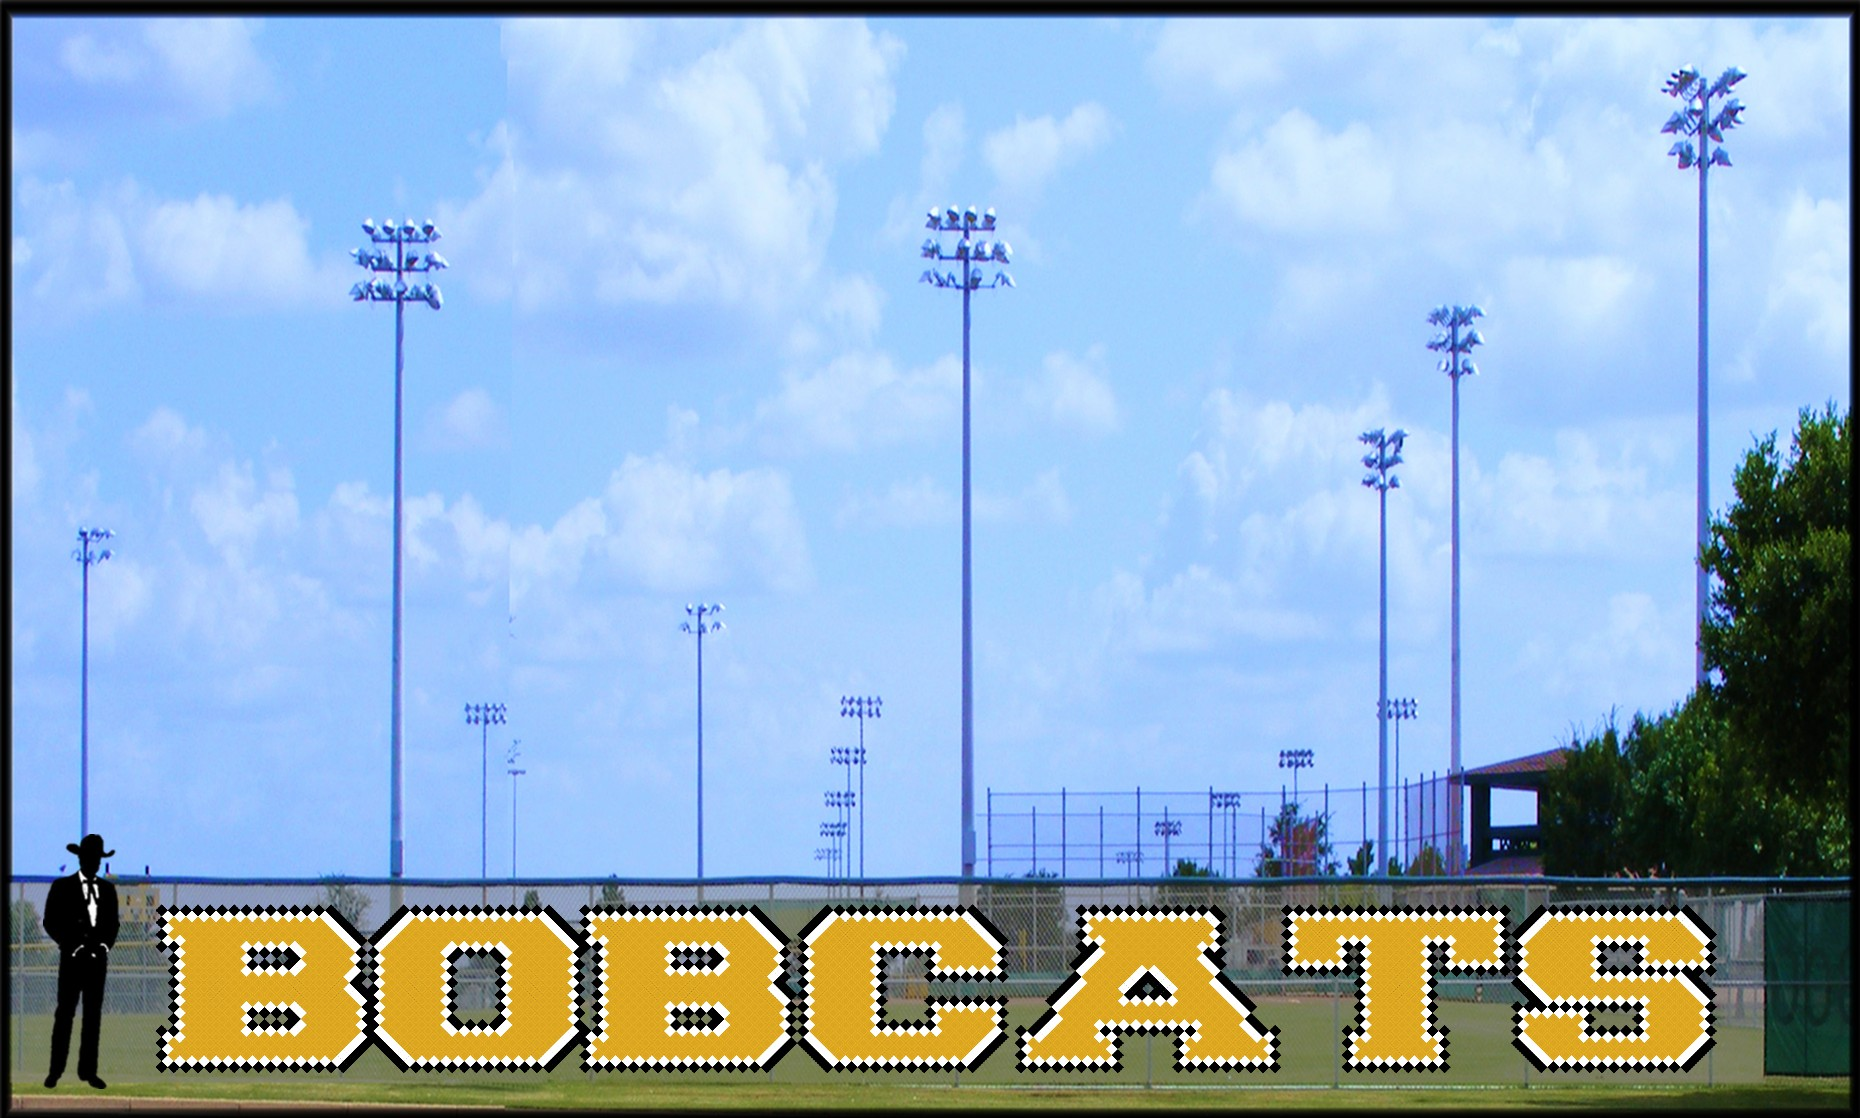 4' Bold Bobcats Letters